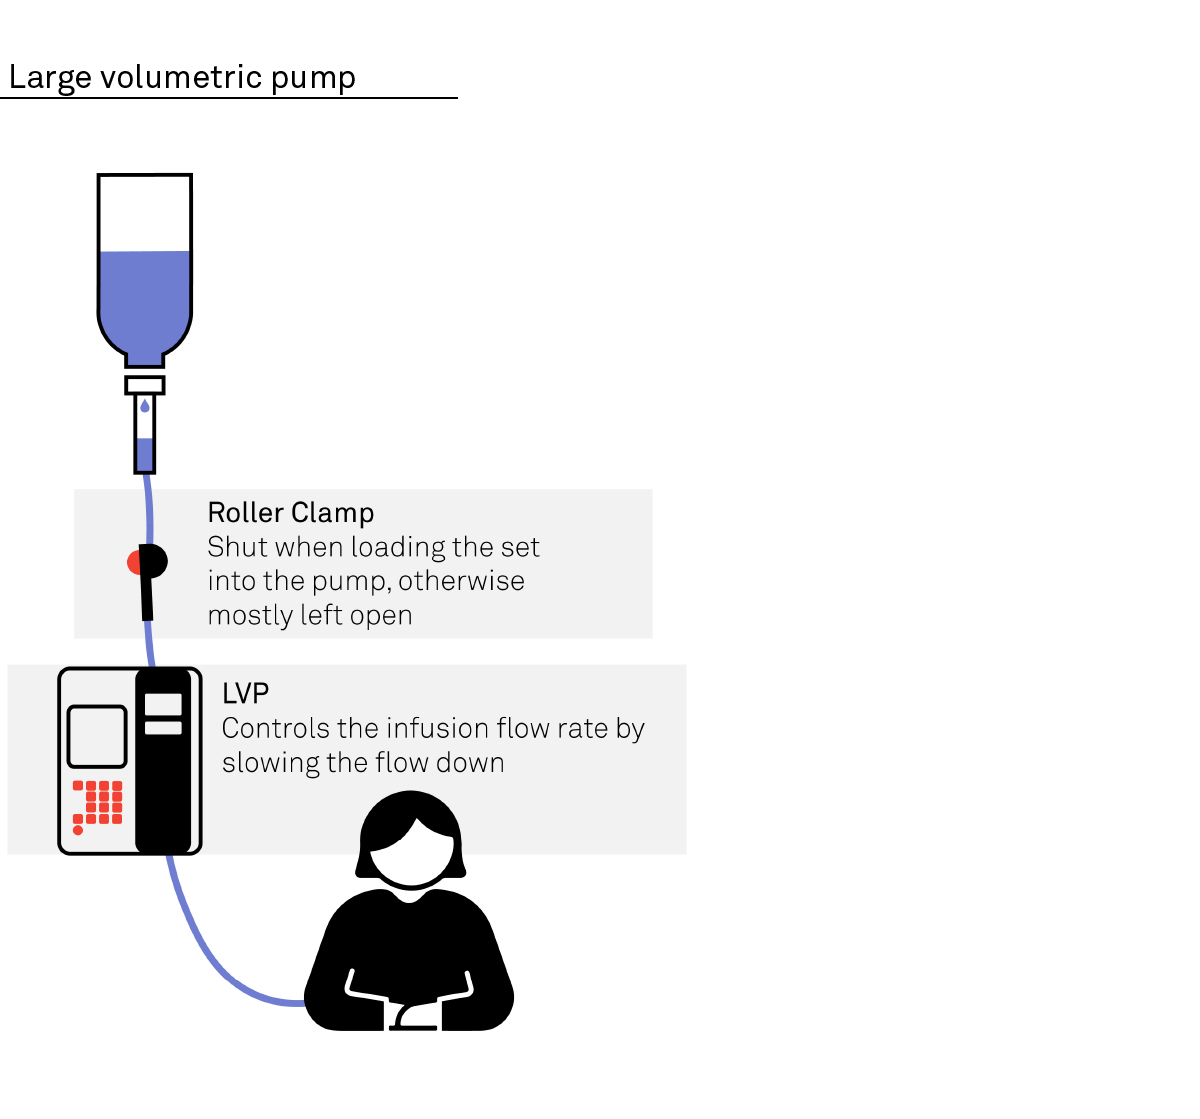 Diagram of how a large volumetric pump works